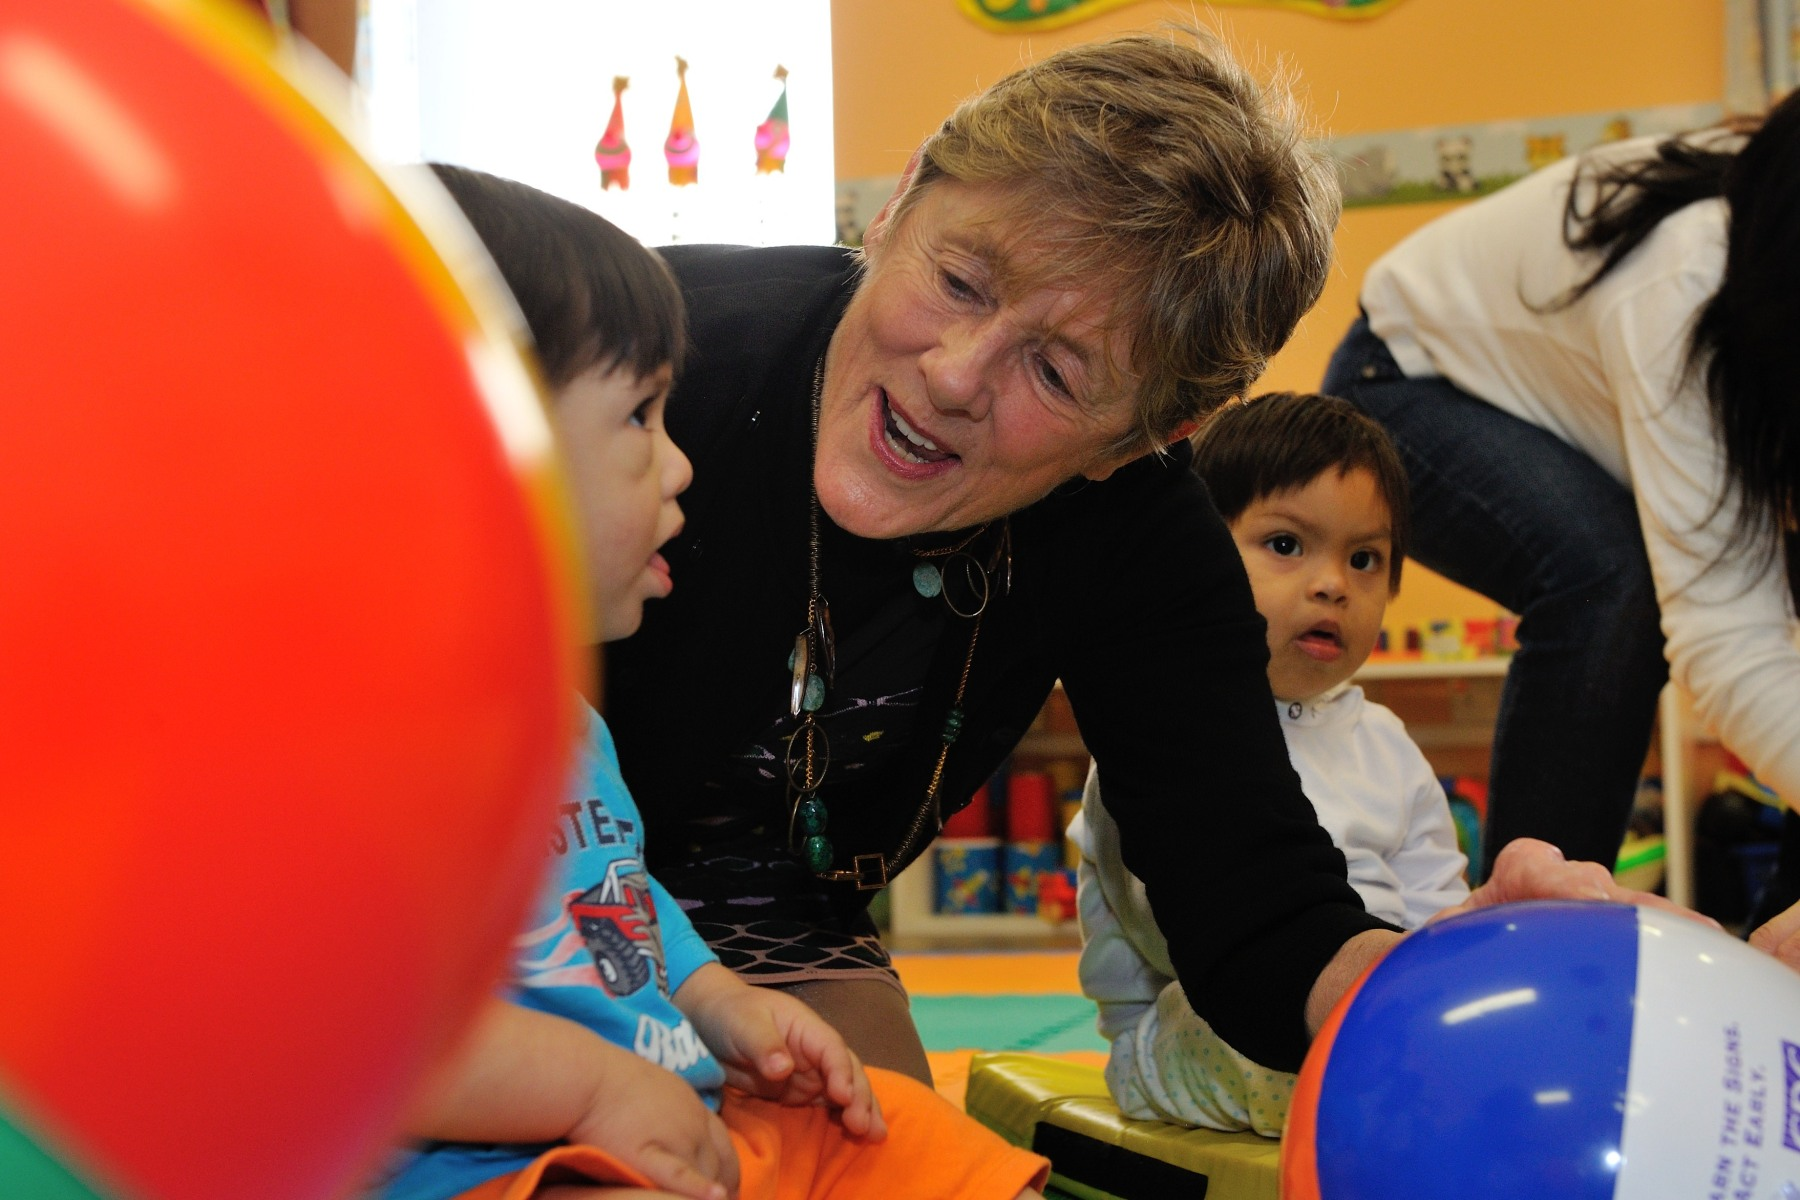 Her Excellency also played with children. The centre provides a comprehensive education system that includes programs designed to assist students throughout their lives.